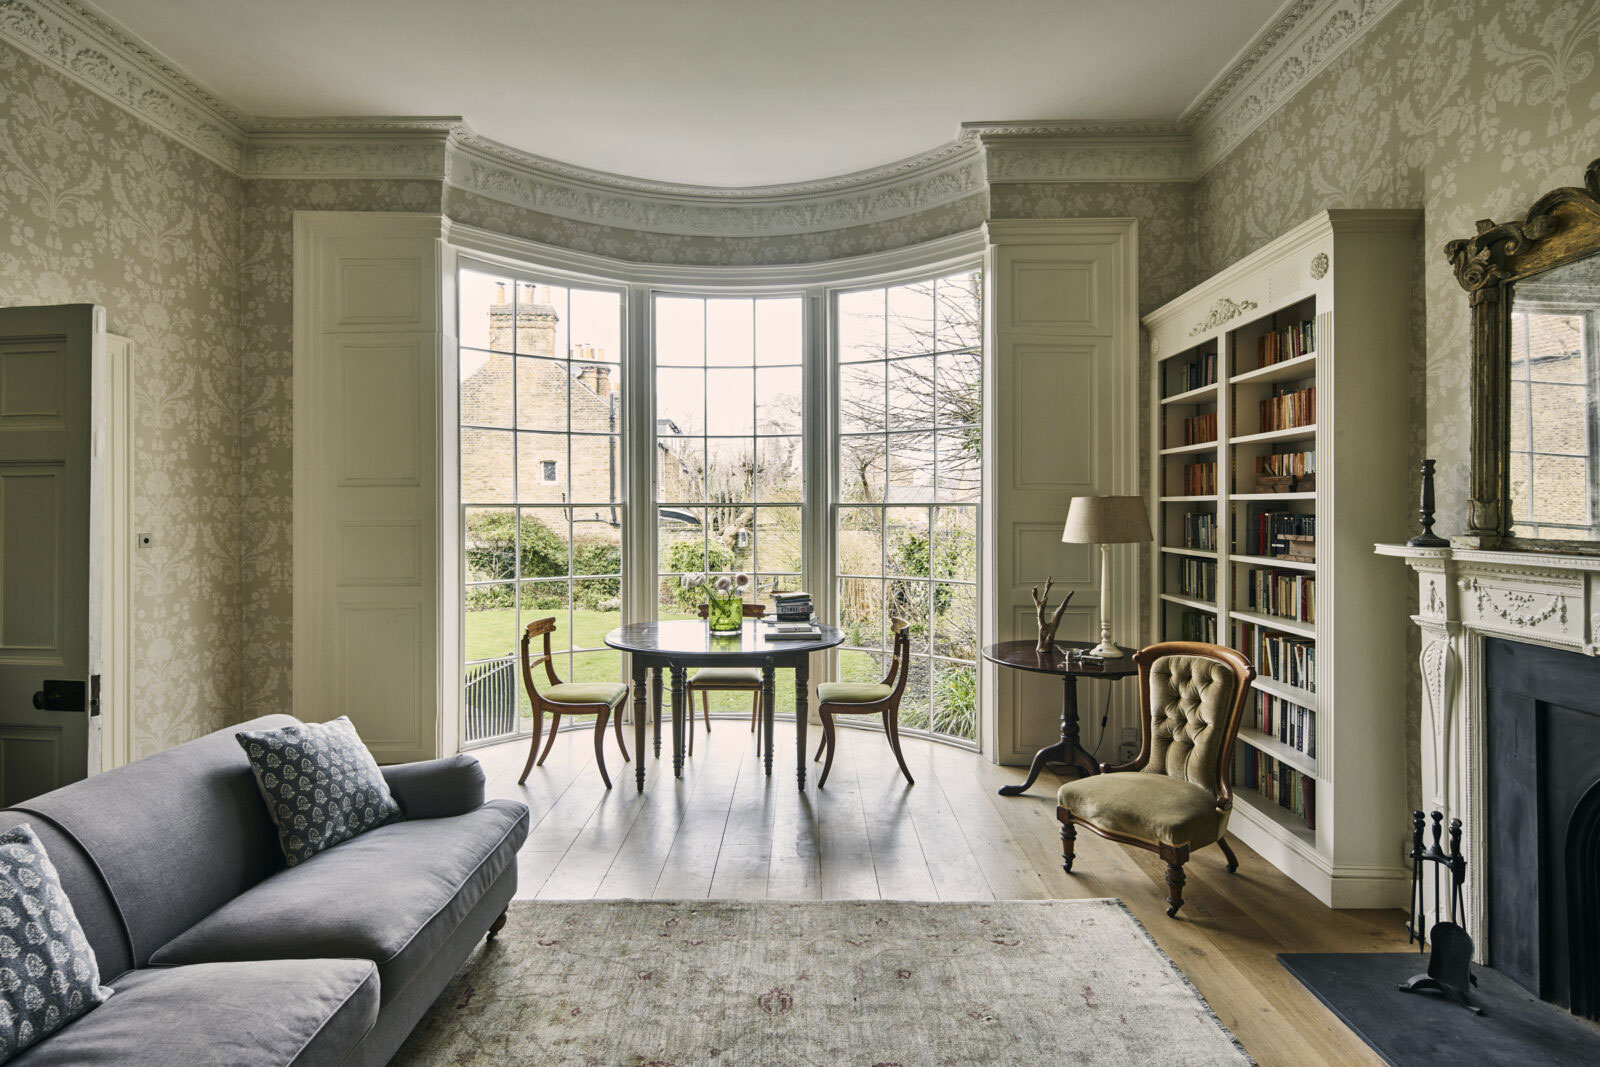 The former ballroom features floor to ceiling curved sash windows